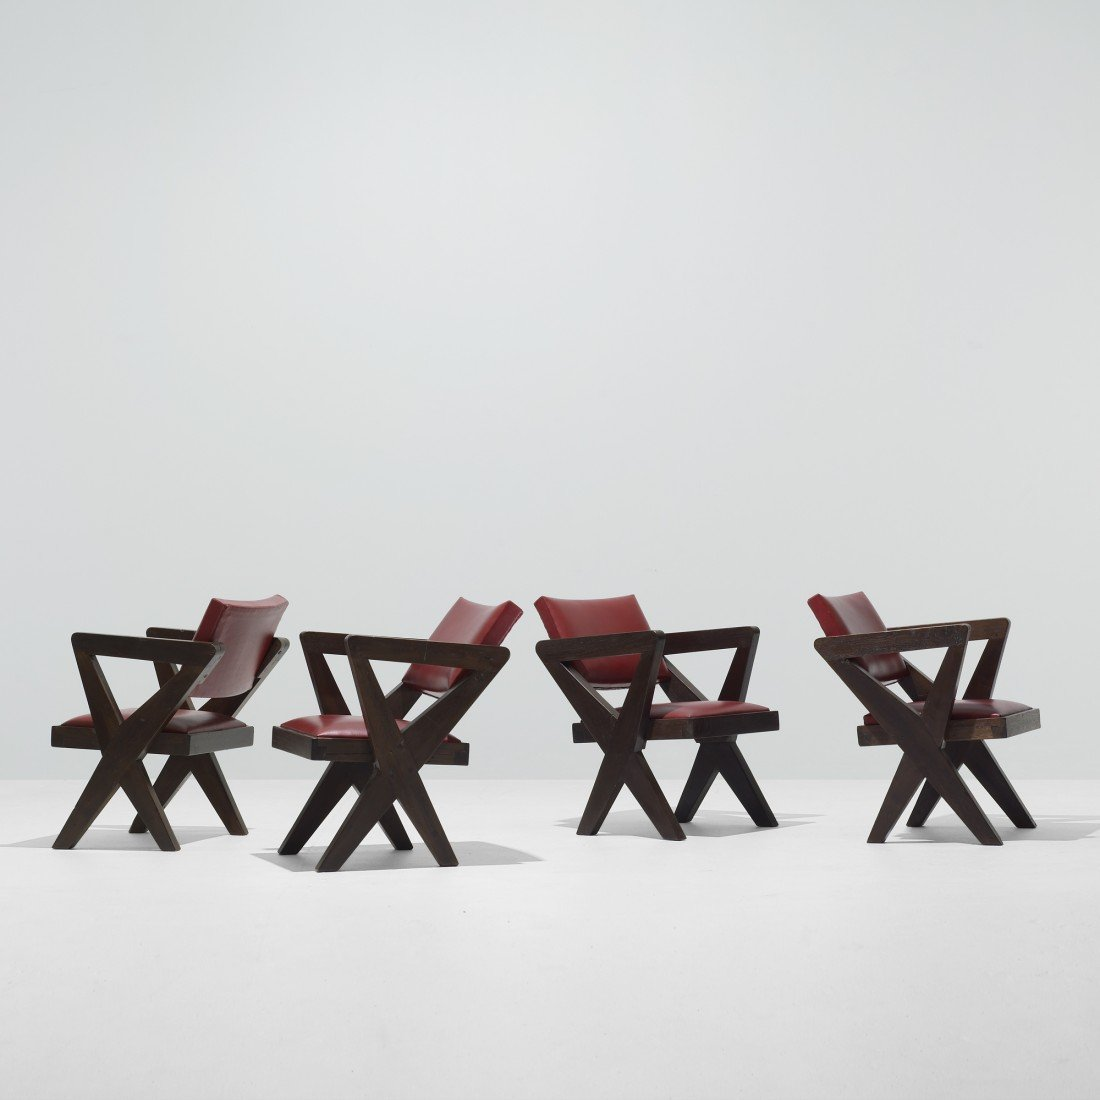 124: Pierre Jeanneret set of four armchairs